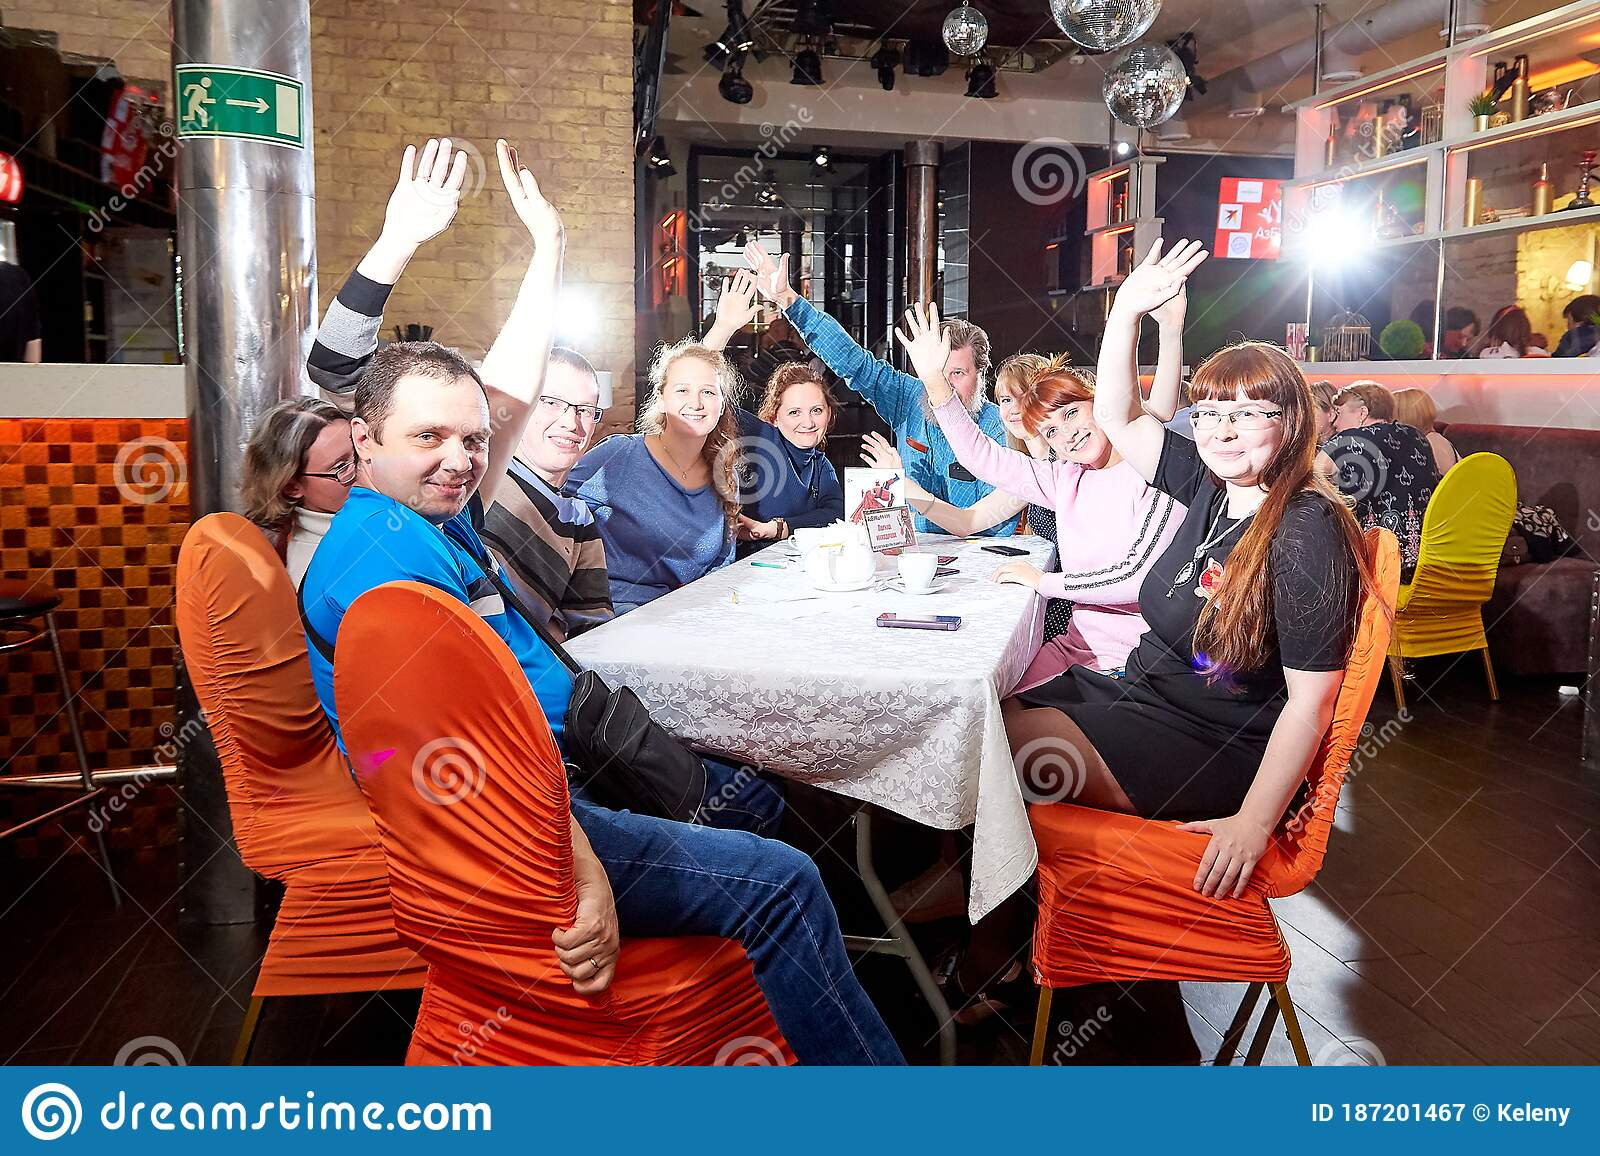 Kirov Russia October 02 2019 People At Tables In Cafe Or Restaurant Posing For Photographer During Intellectual Game In Which Editorial Photography Image Of Interior National 187201467